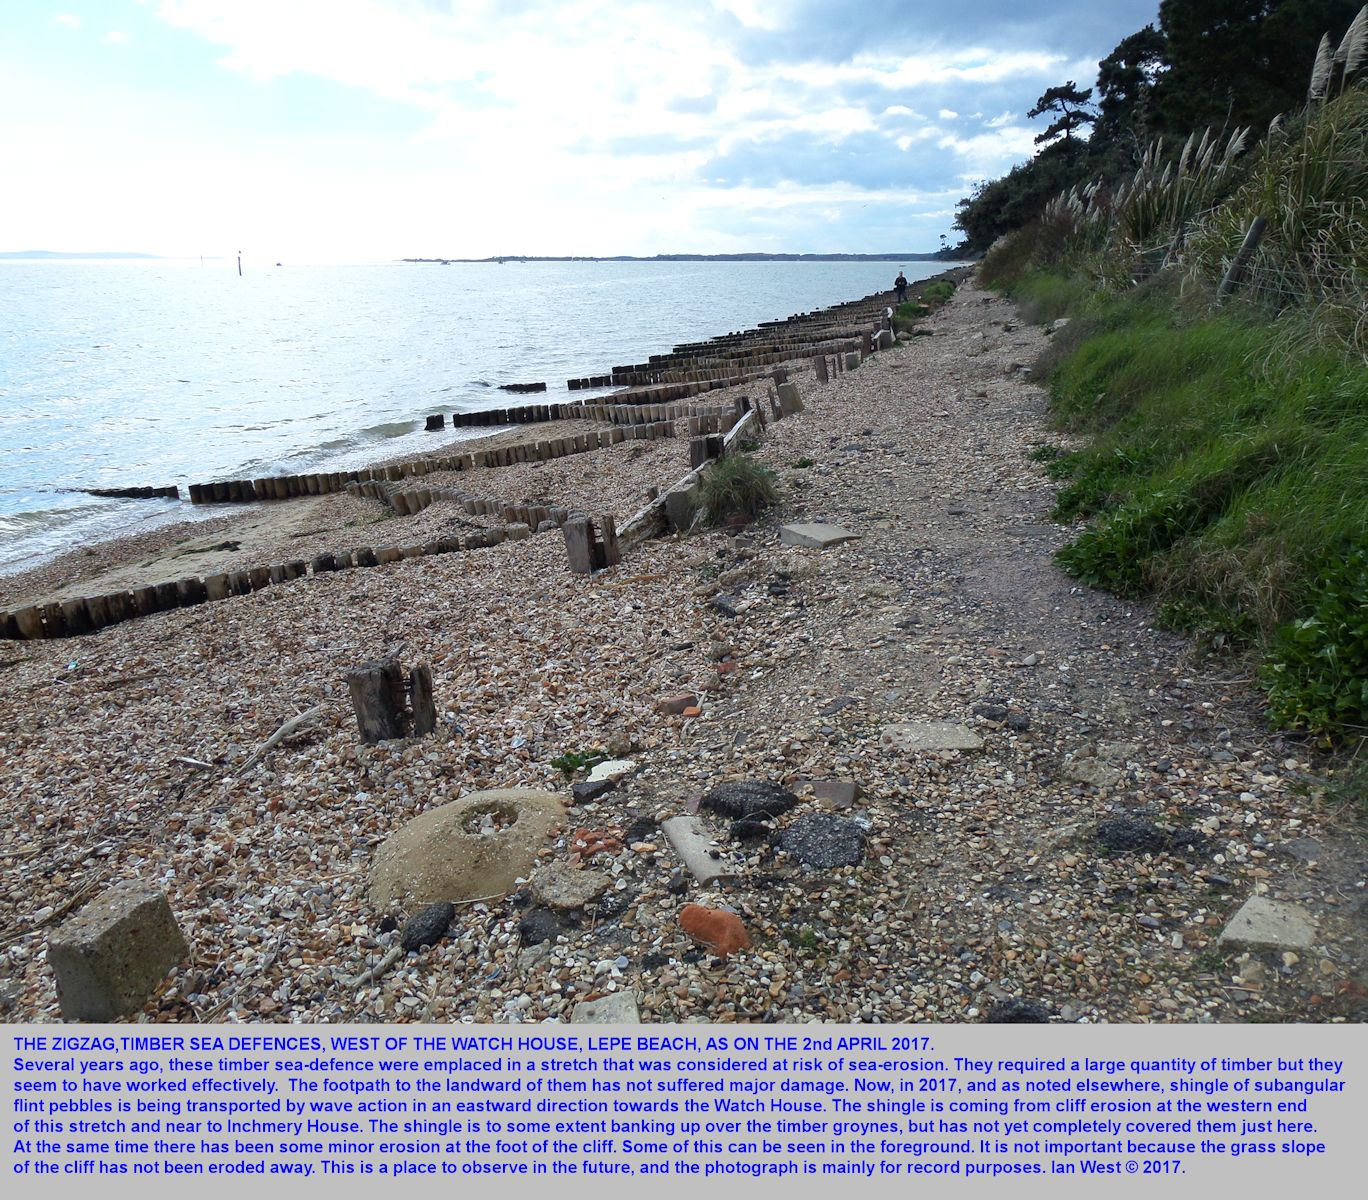 A zigzag pattern of timber sea defences to the west of the Watch House at Lepe Beach, Hampshire, as seen in 2017, when shingle was accumulating